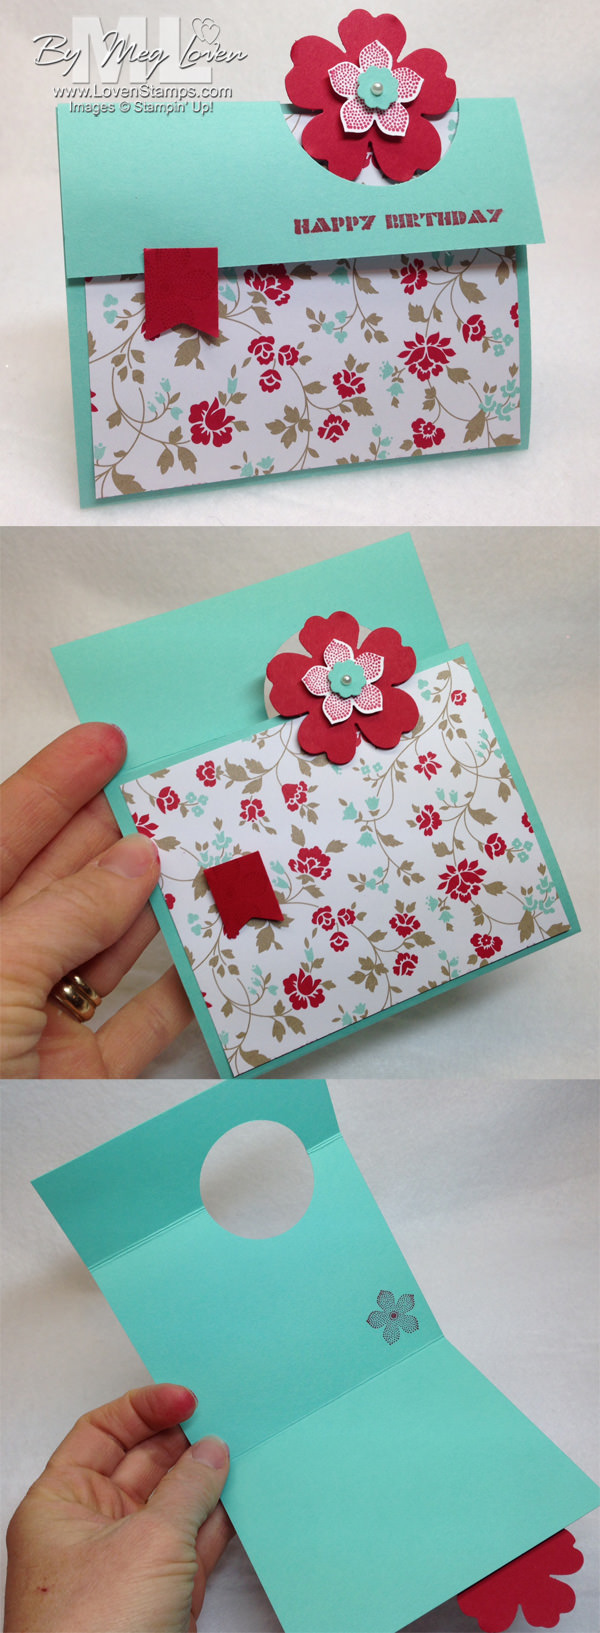 Peek A Boo Card Video Tutorial: Petite Petals & the Fresh Prints Designer Series Paper Stack, by LovenStamps